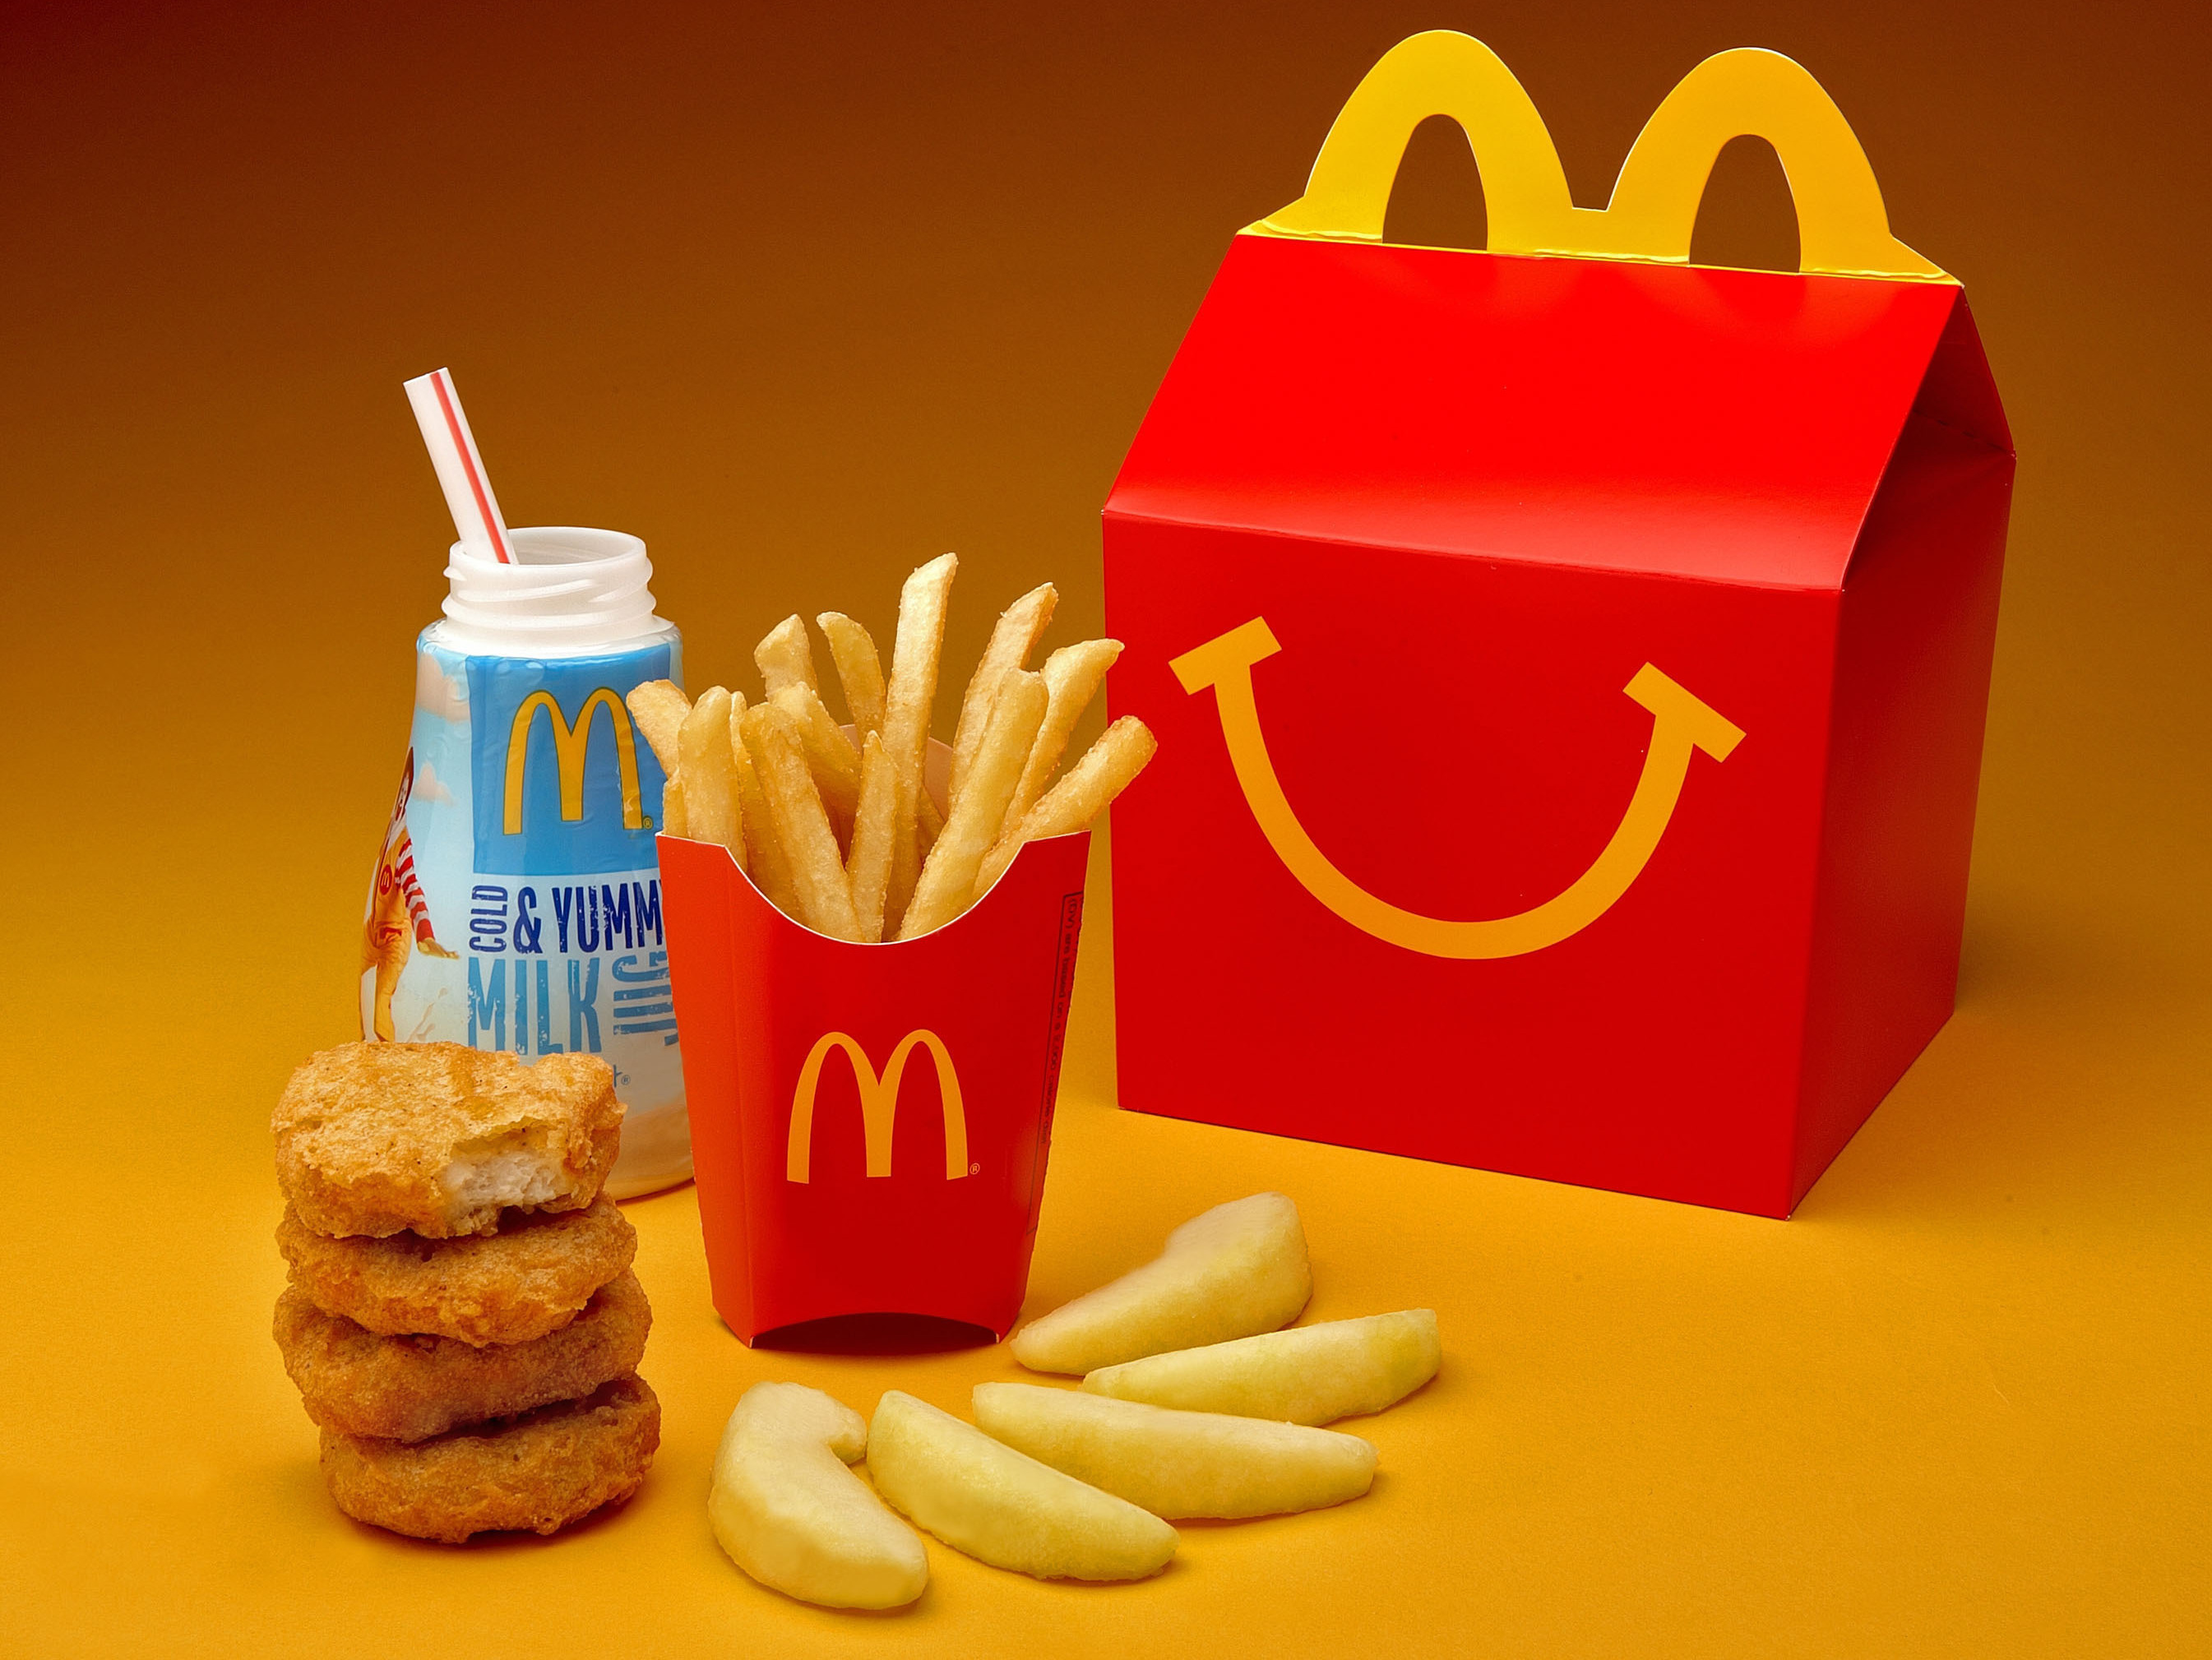 McDonald's Says Bye-Bye To Sugary Sodas In Happy Meals